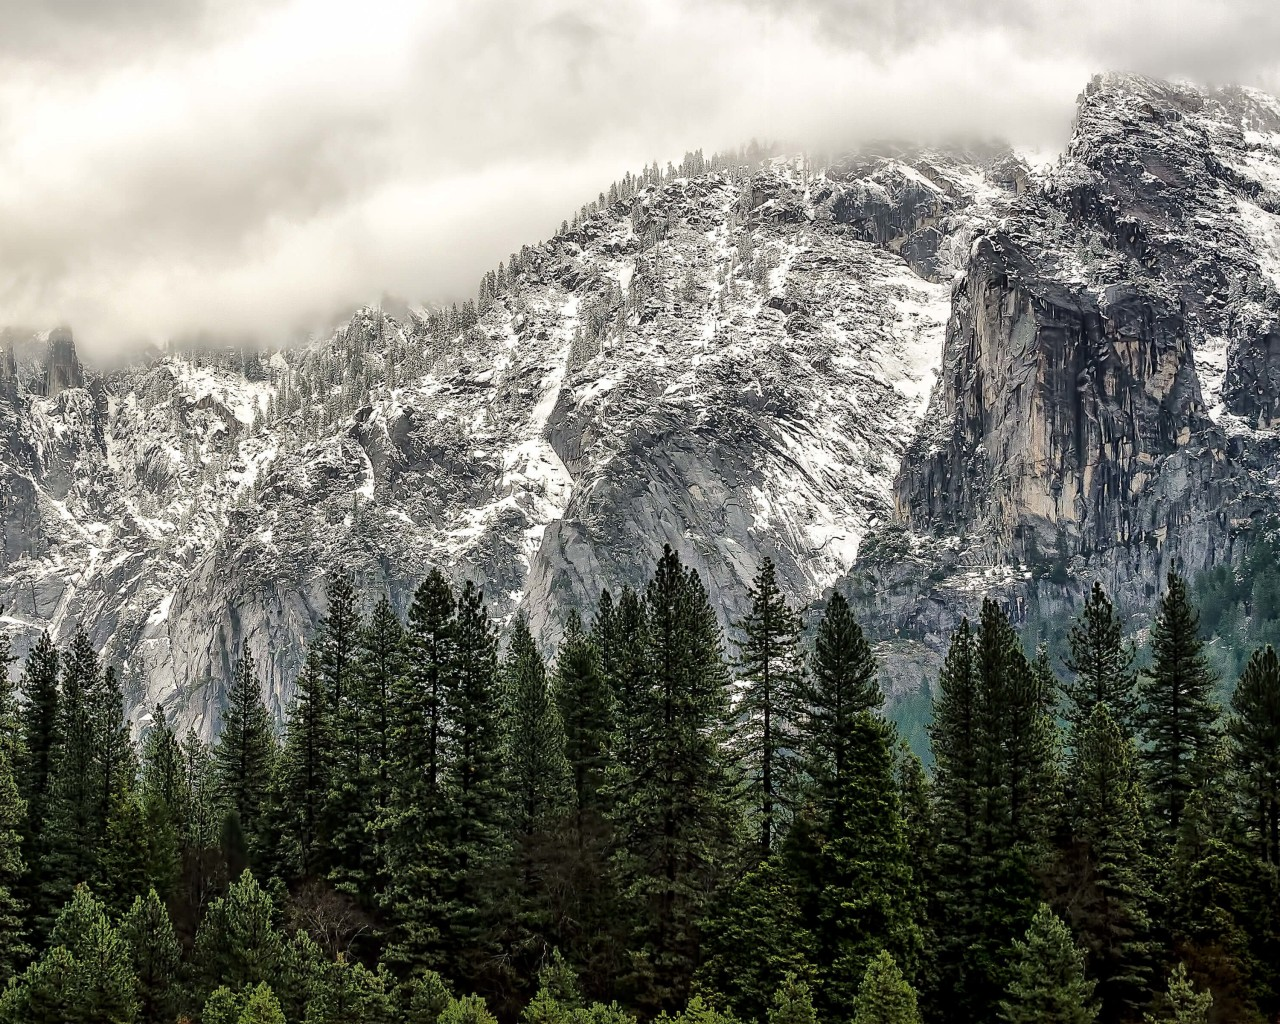 Winter Day at Yosemite National Park Wallpaper for Desktop 1280x1024